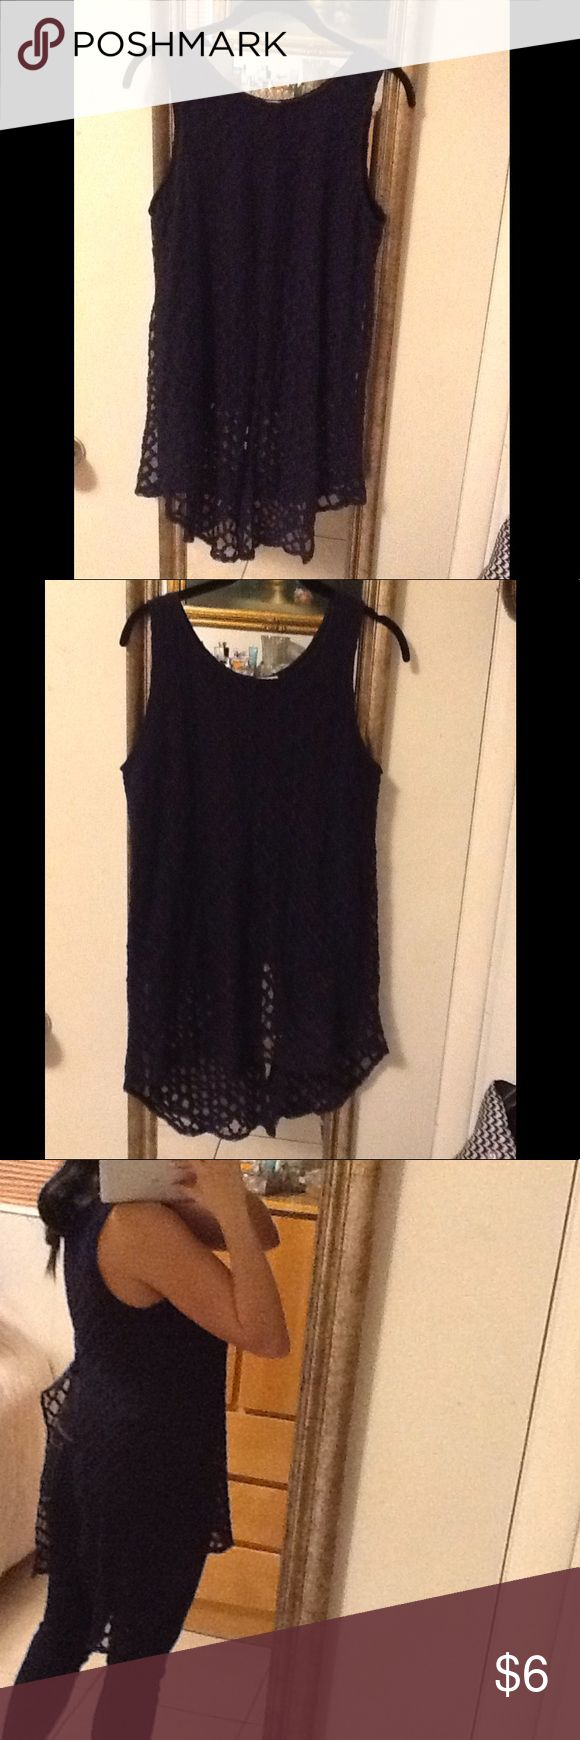 Navy blue high low quilt lace sleeveless tunic top Navy blue high low quilt lace sleeveless tunic top. Slit back detail. Under top attached. In excellent condition. Thanks♥️ capri Tops